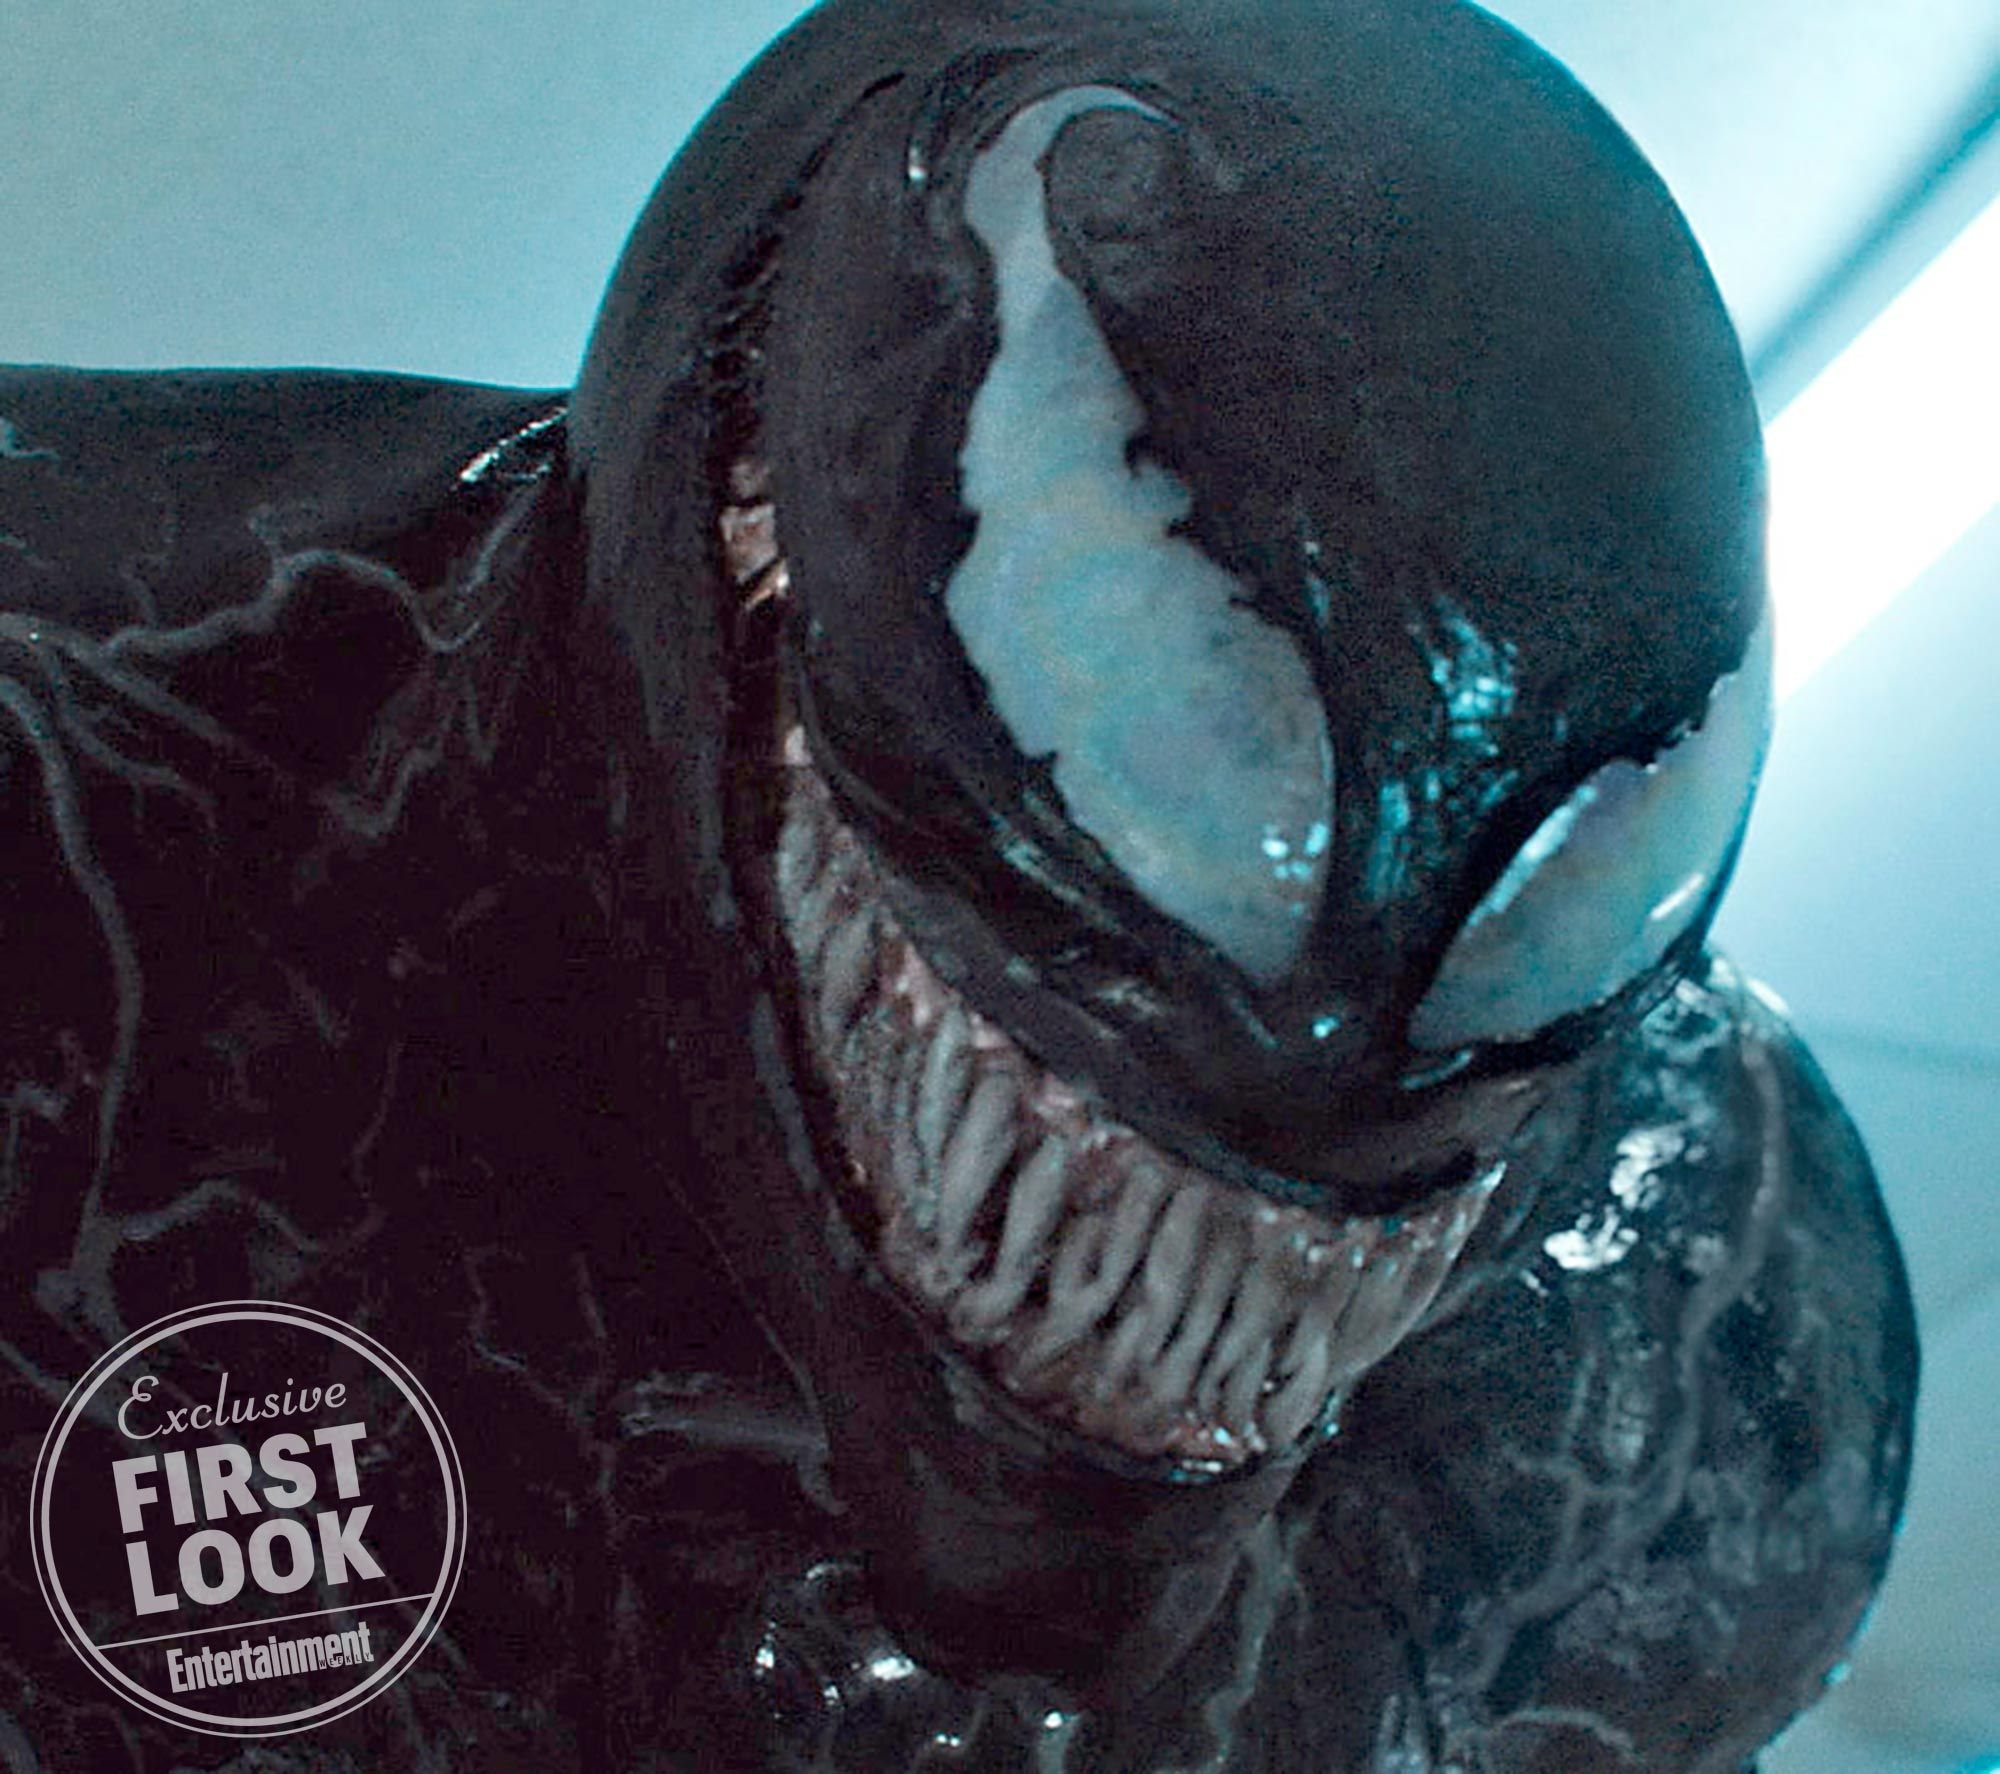 Venom Movie NOT Connected To Spider-man